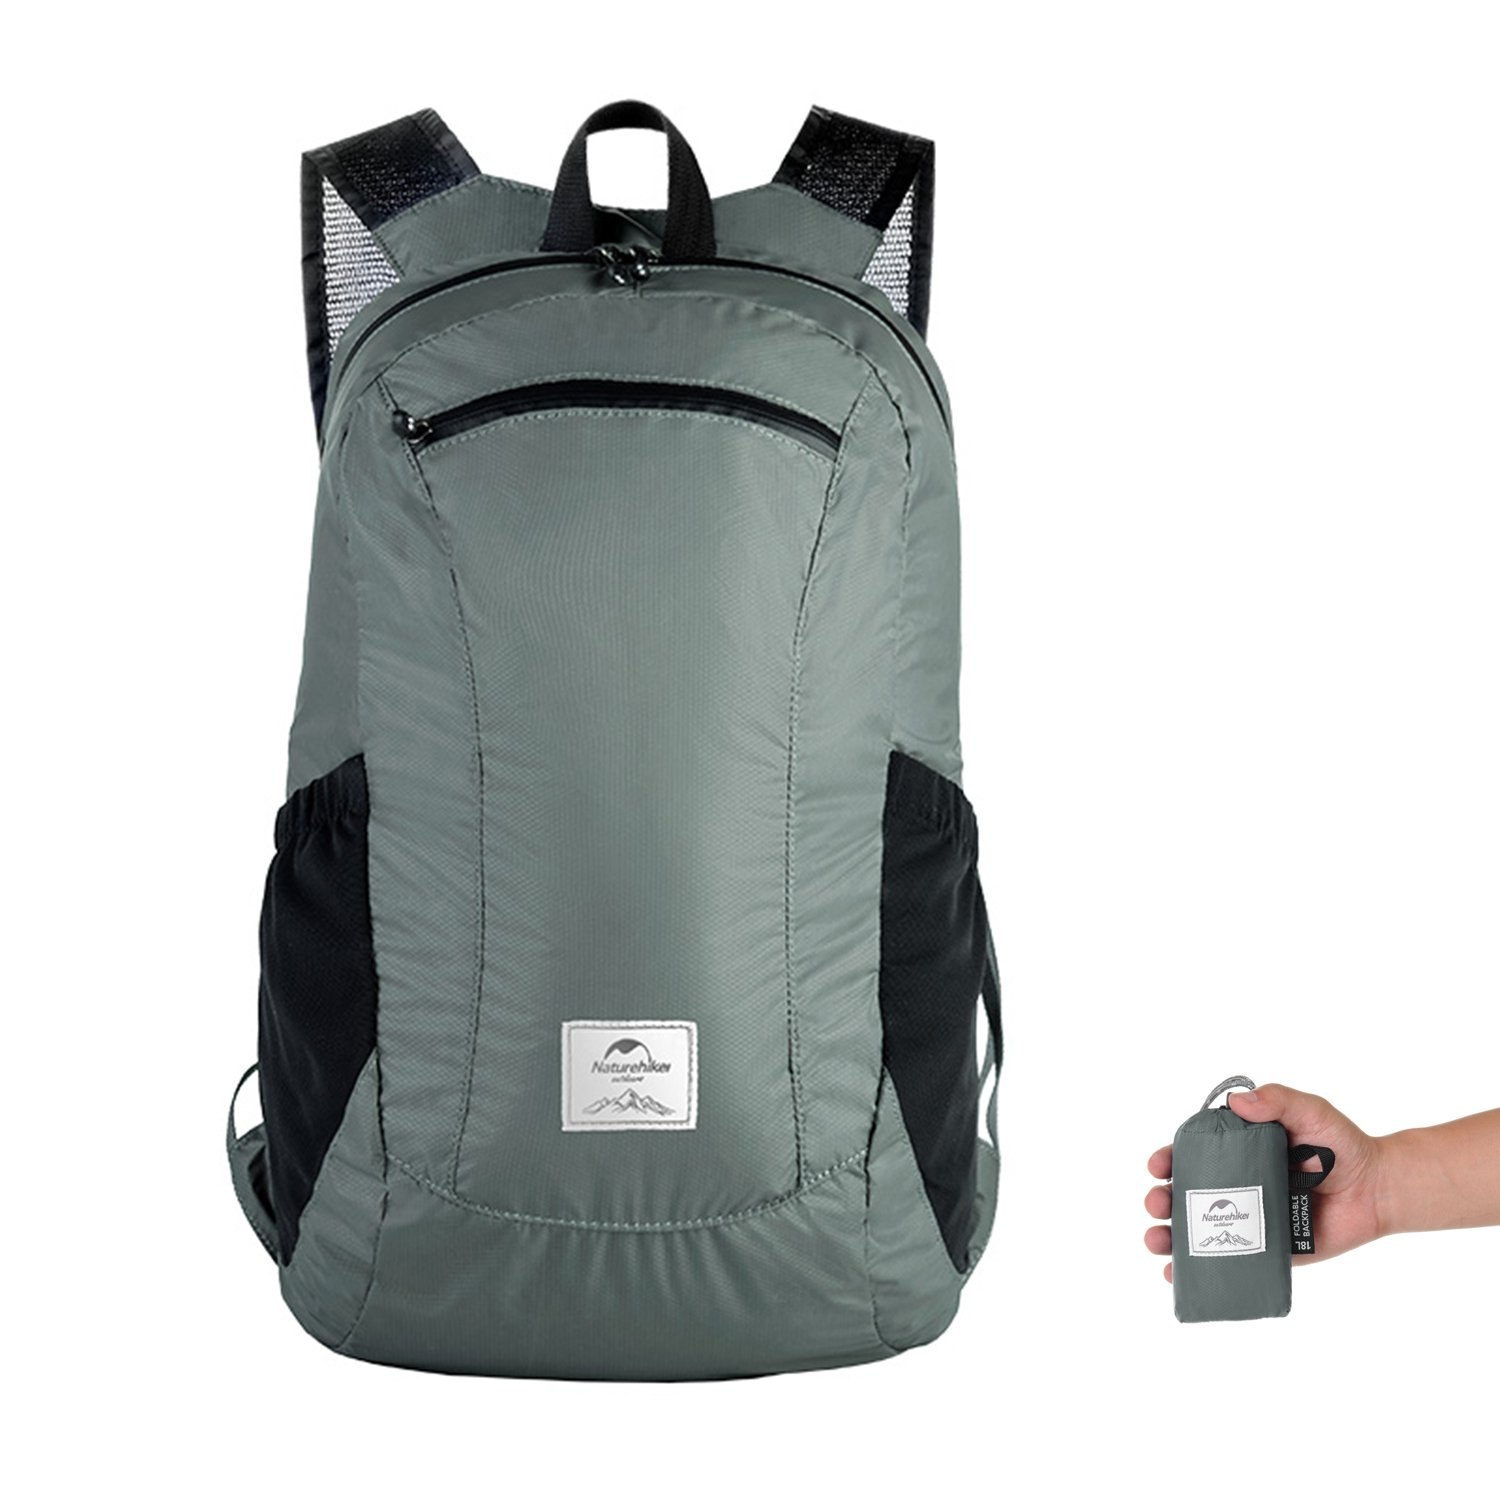 e7890f8ca2d Airplane Travel With Hiking Backpack - CEAGESP